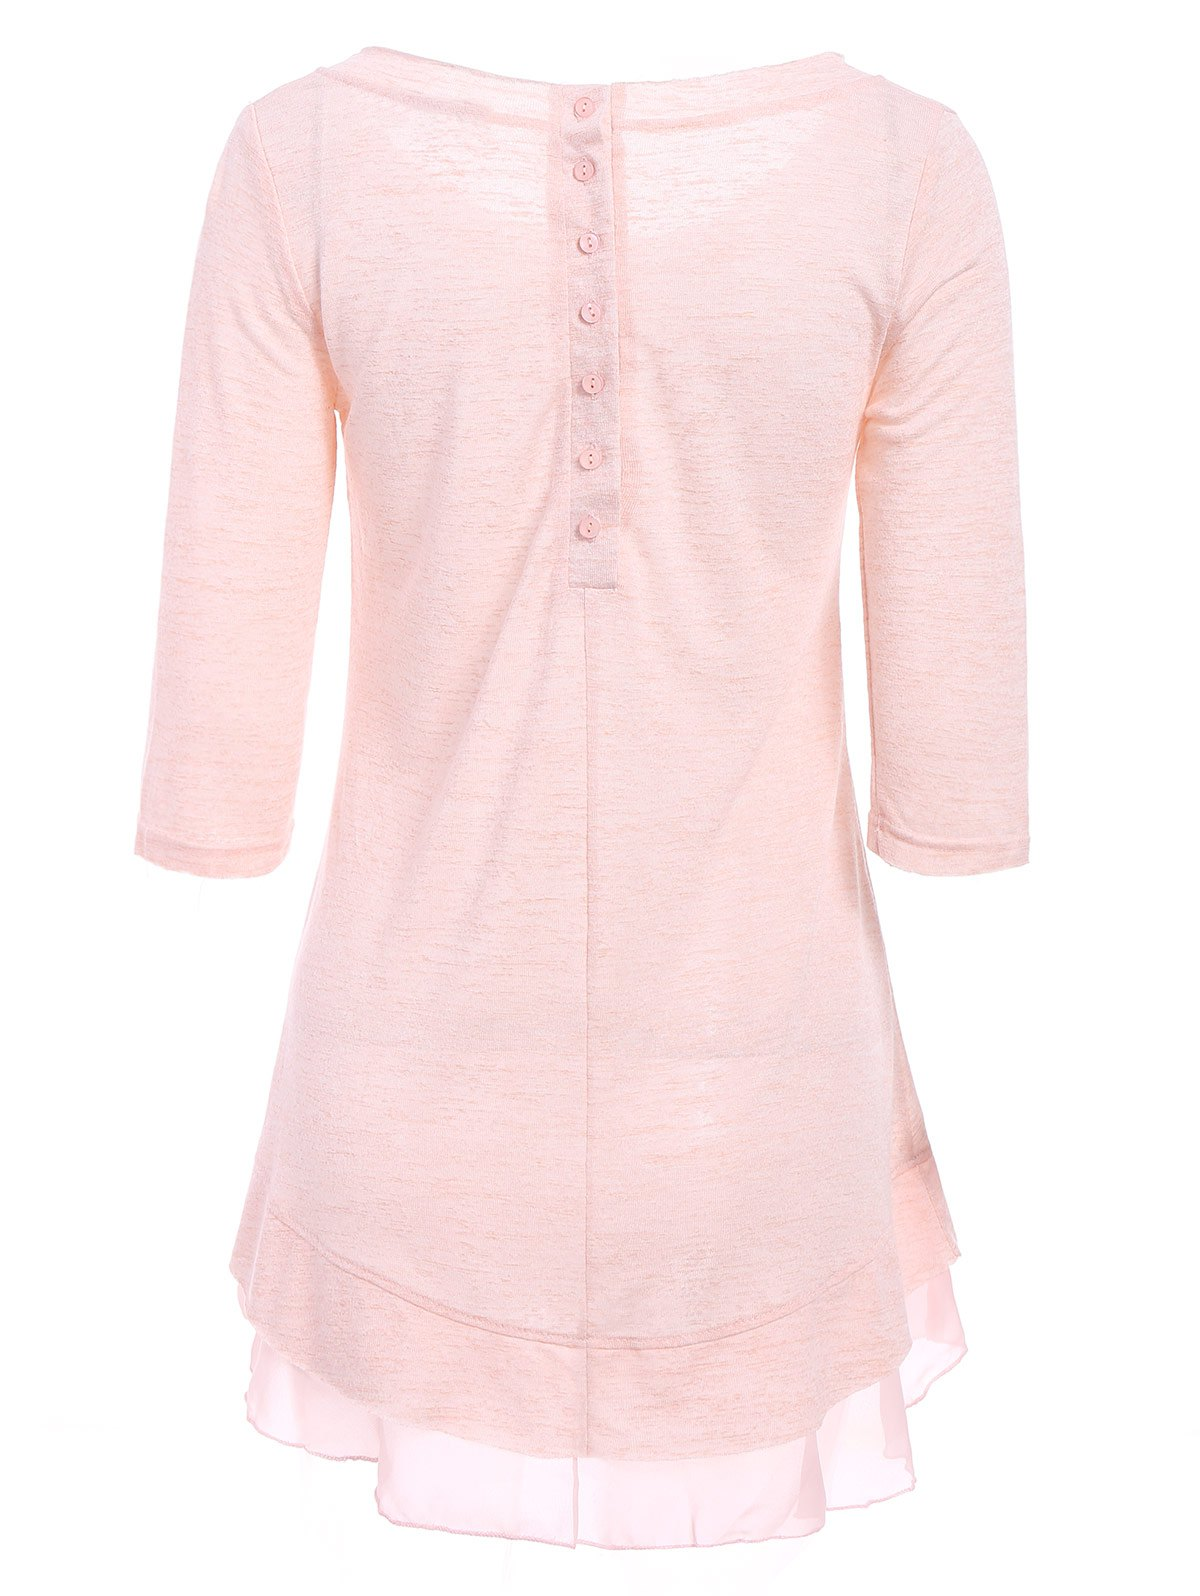 Stylish Scoop Neck Solid Color 3/4 Sleeve T-Shirt Dress For Women - LIGHT PINK L